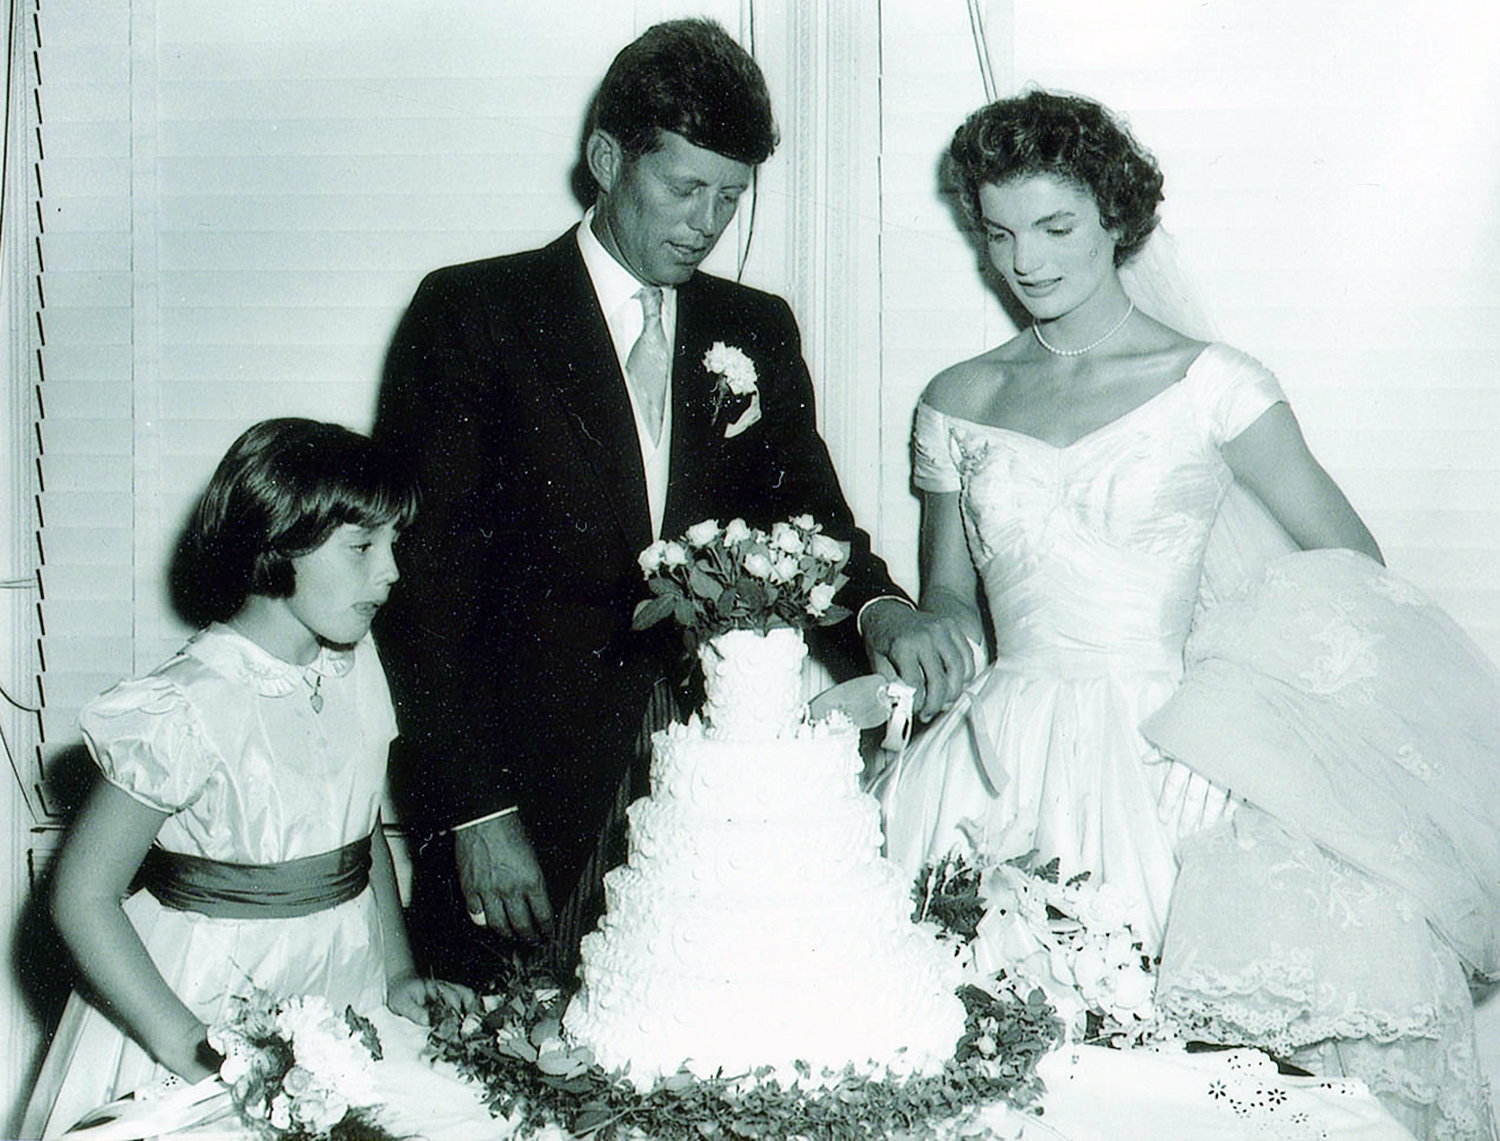 Never-before-seen wedding photos of JFK and Jackie Kennedy